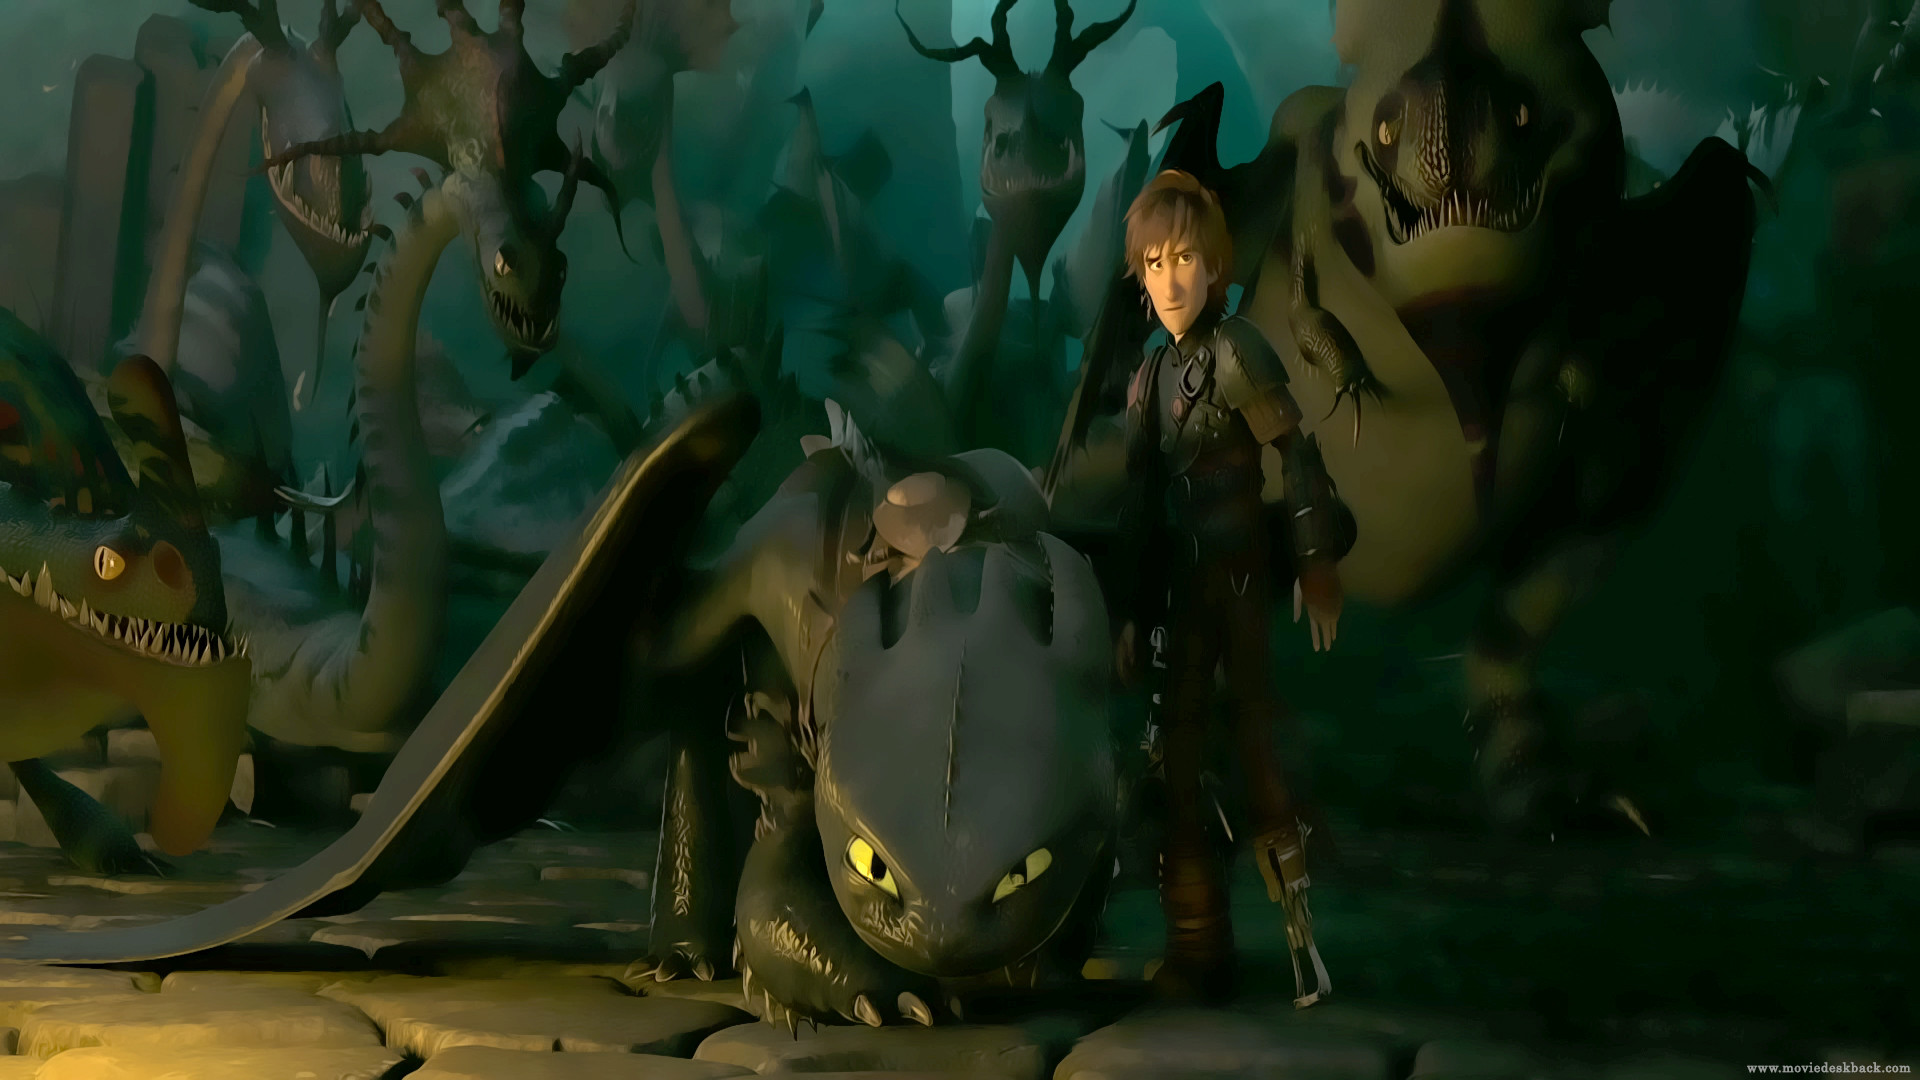 1920x1080 How To Train Your Dragon 2 - wallpapers (26)